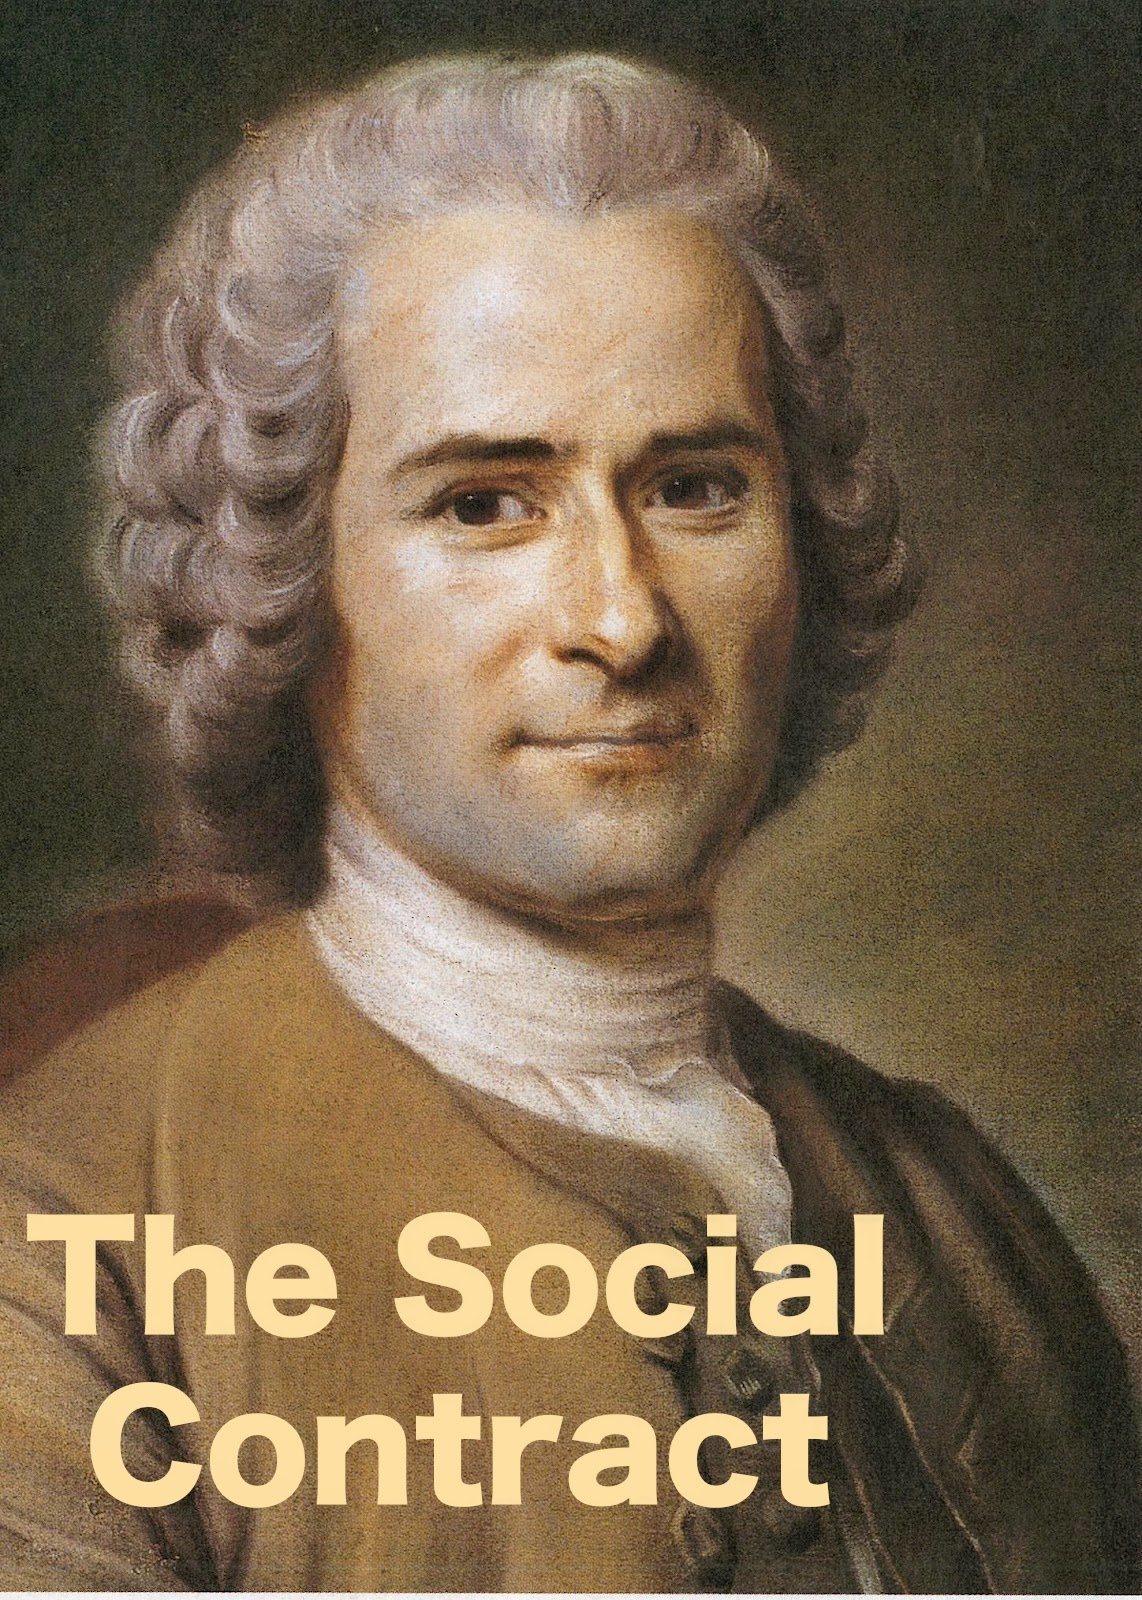 Rousseau's The Social Contract · Liberty, Equality, Fraternity